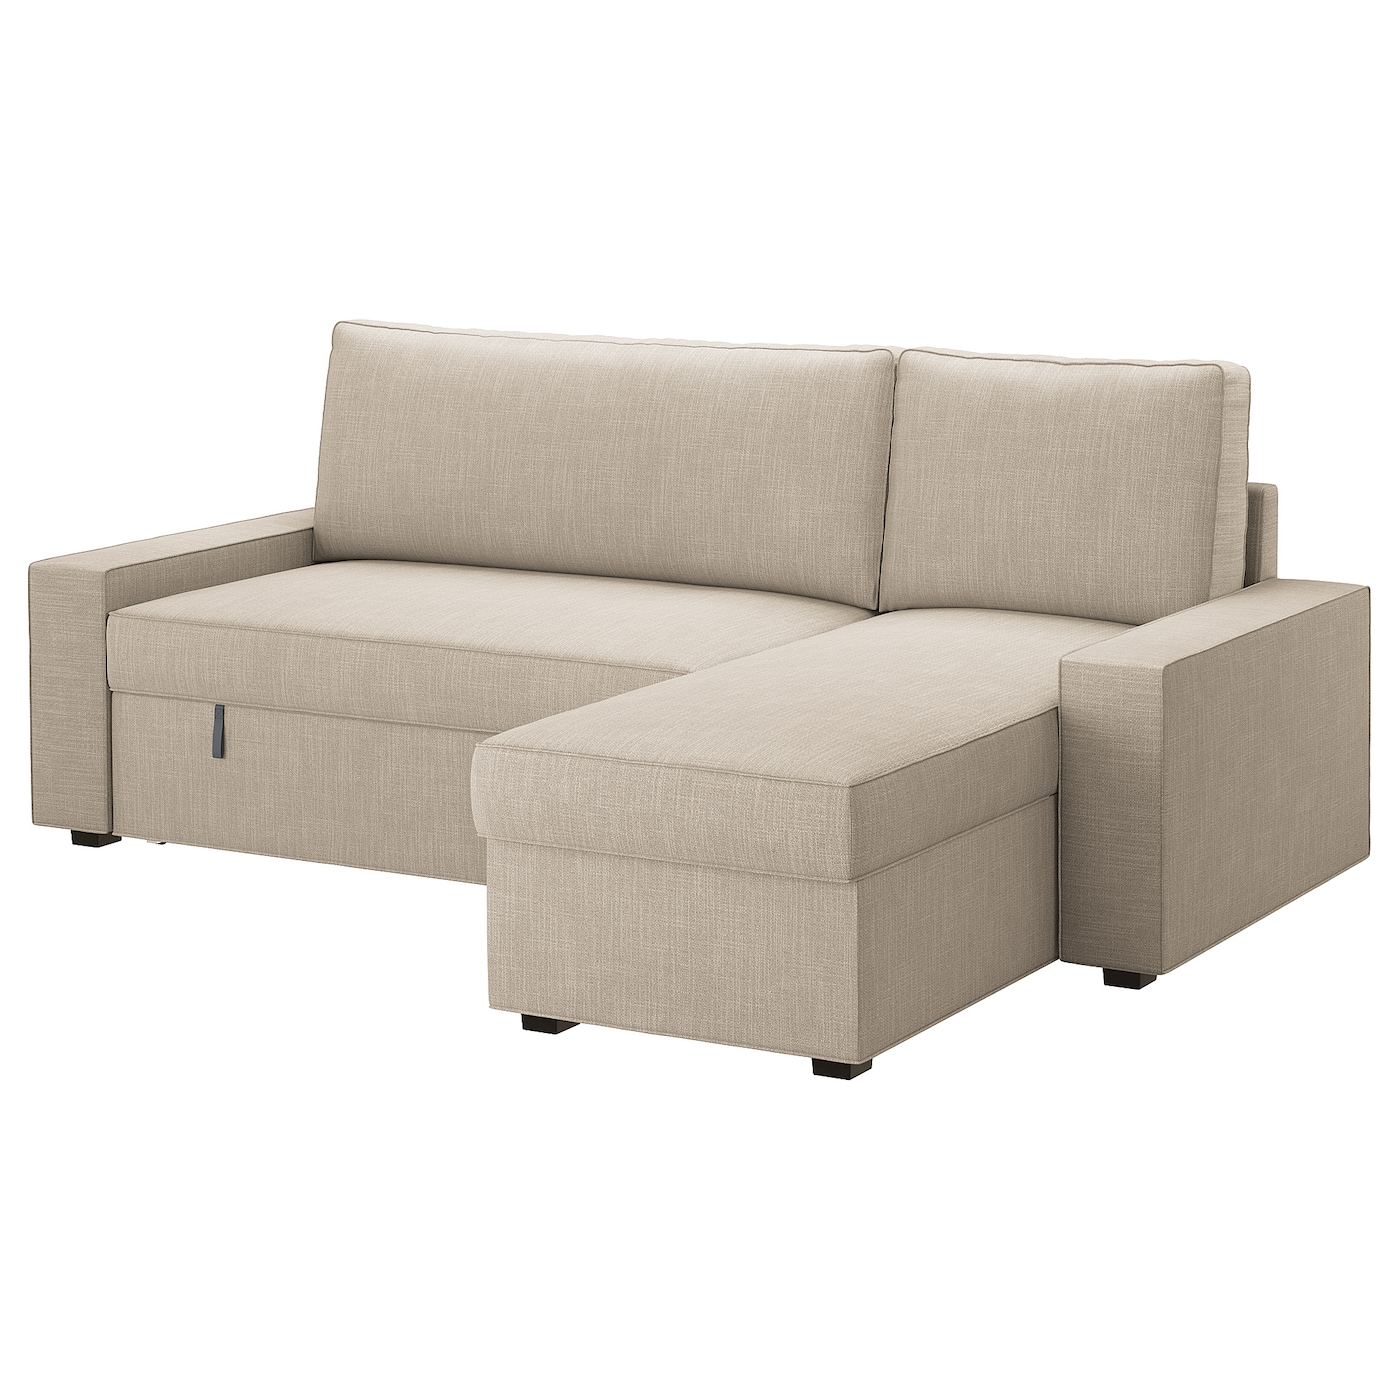 sofa beds with chaise design of chaise lounge sofa bed